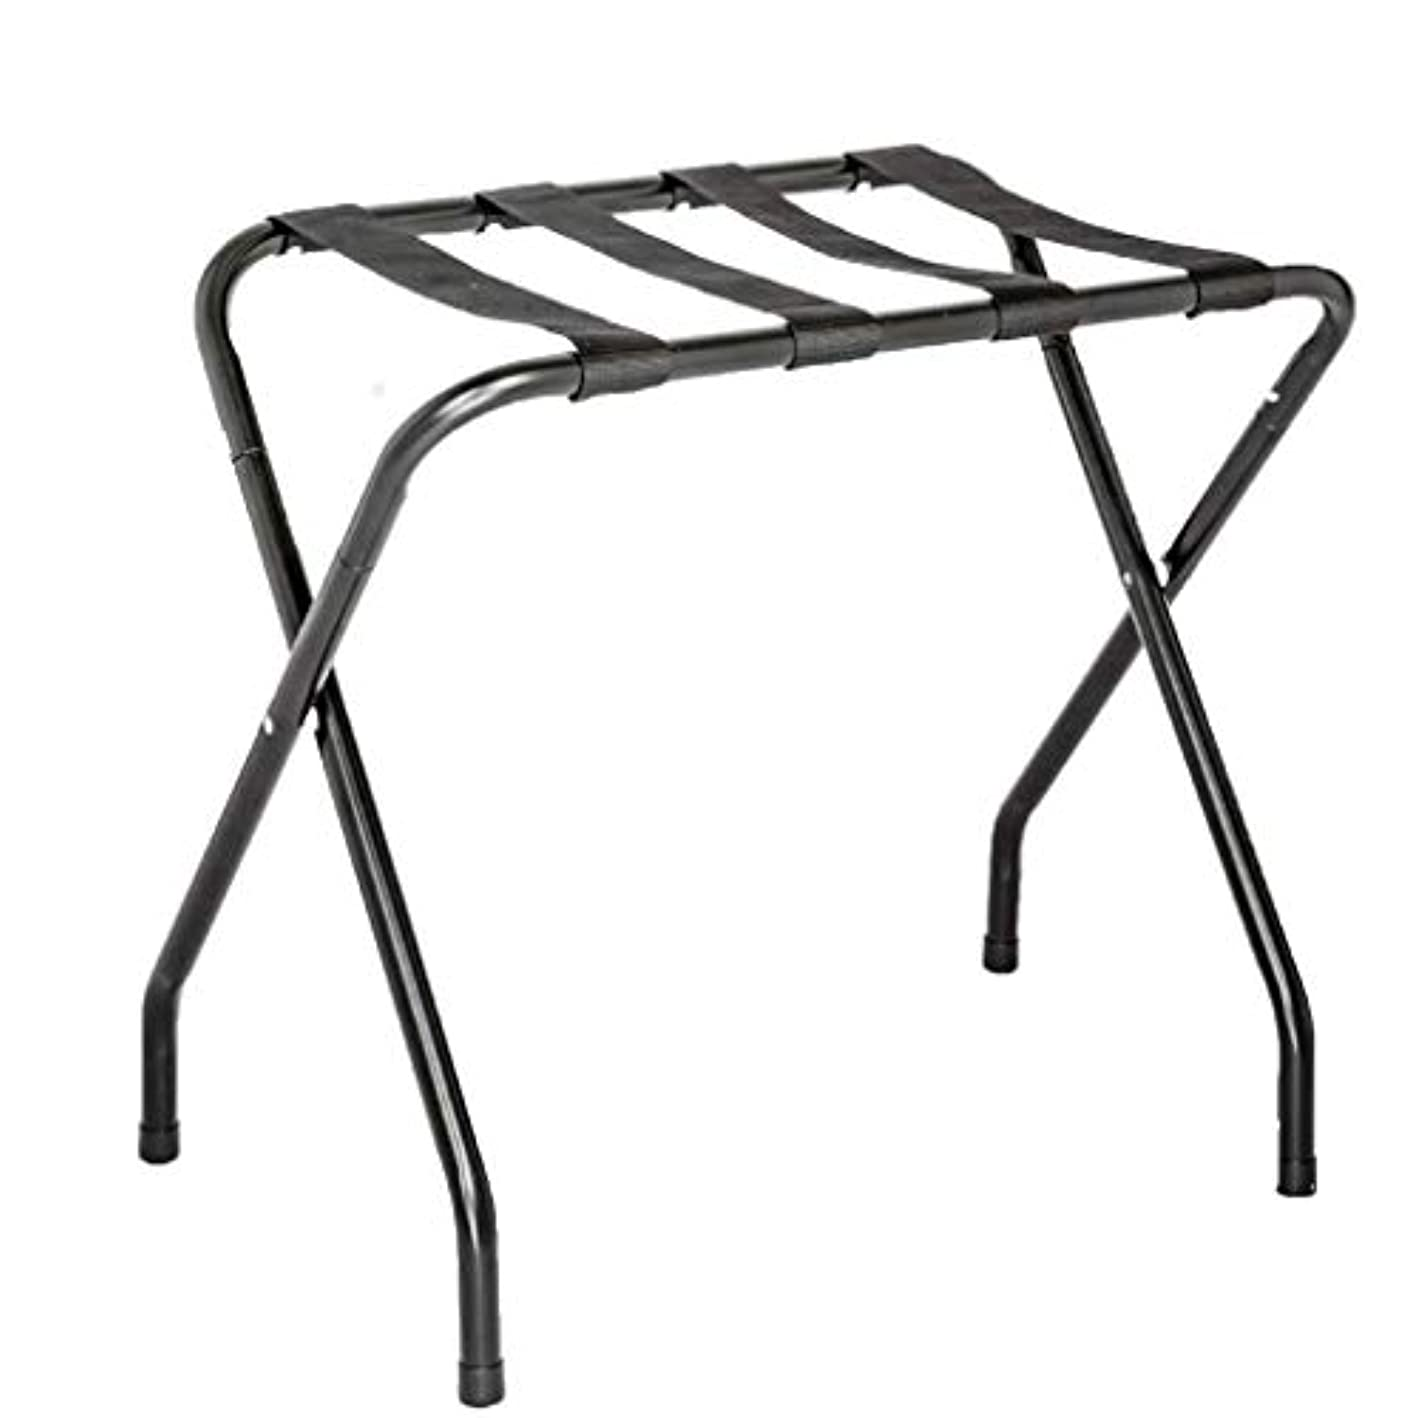 US Office Elements Folding Collapsible Travel Luggage Rack with Black Nylon Straps (Single-1, Black) zxymmr2613789